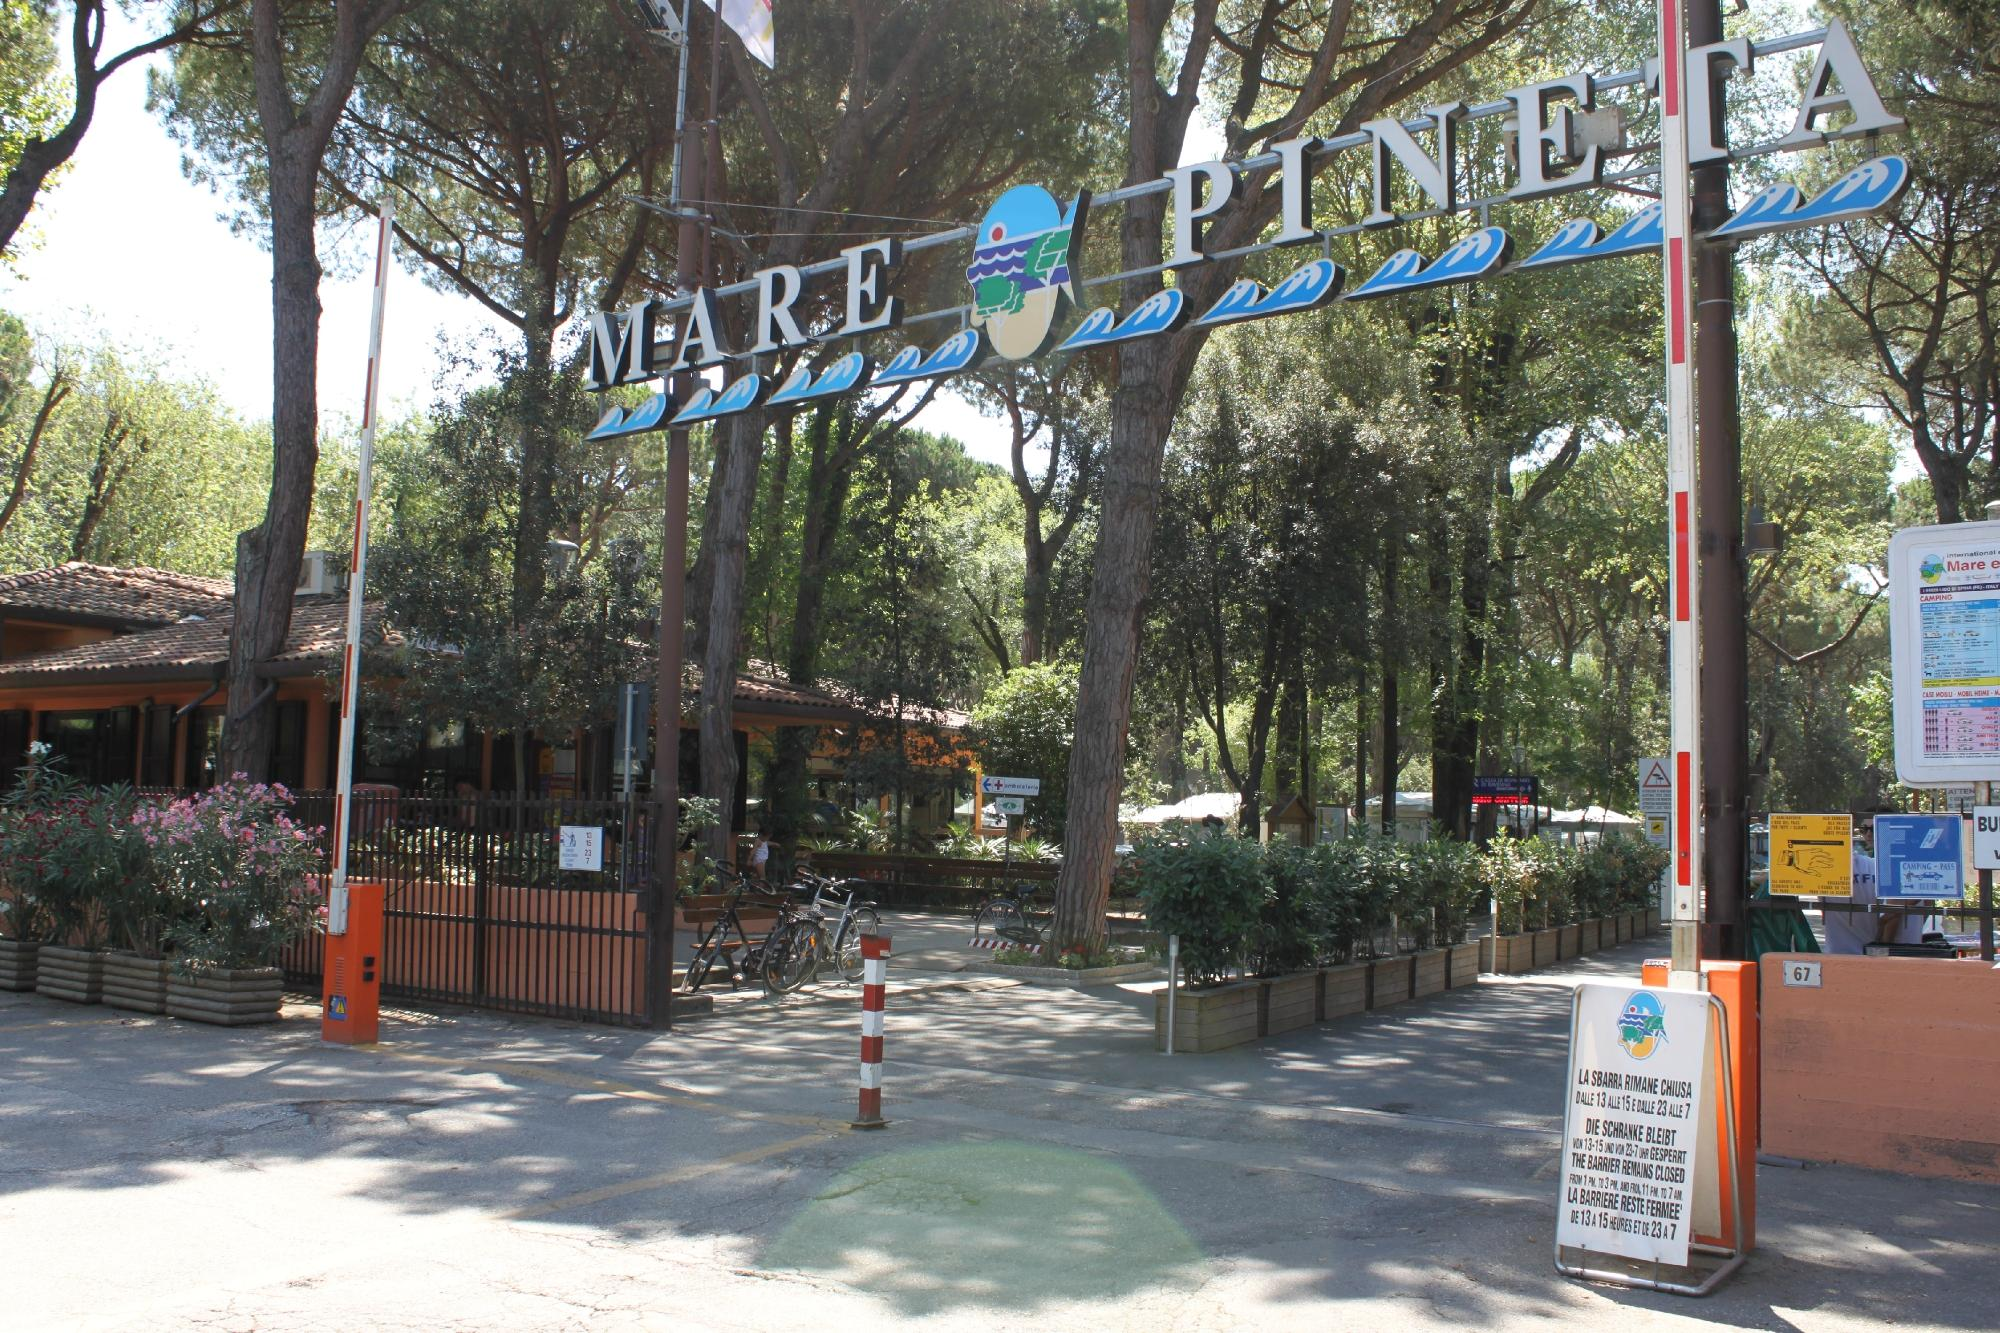 Lido Degli Estensi Italy  city photo : Camping Mare e Pineta Lido degli Estensi, Italy UPDATED 2016 ...